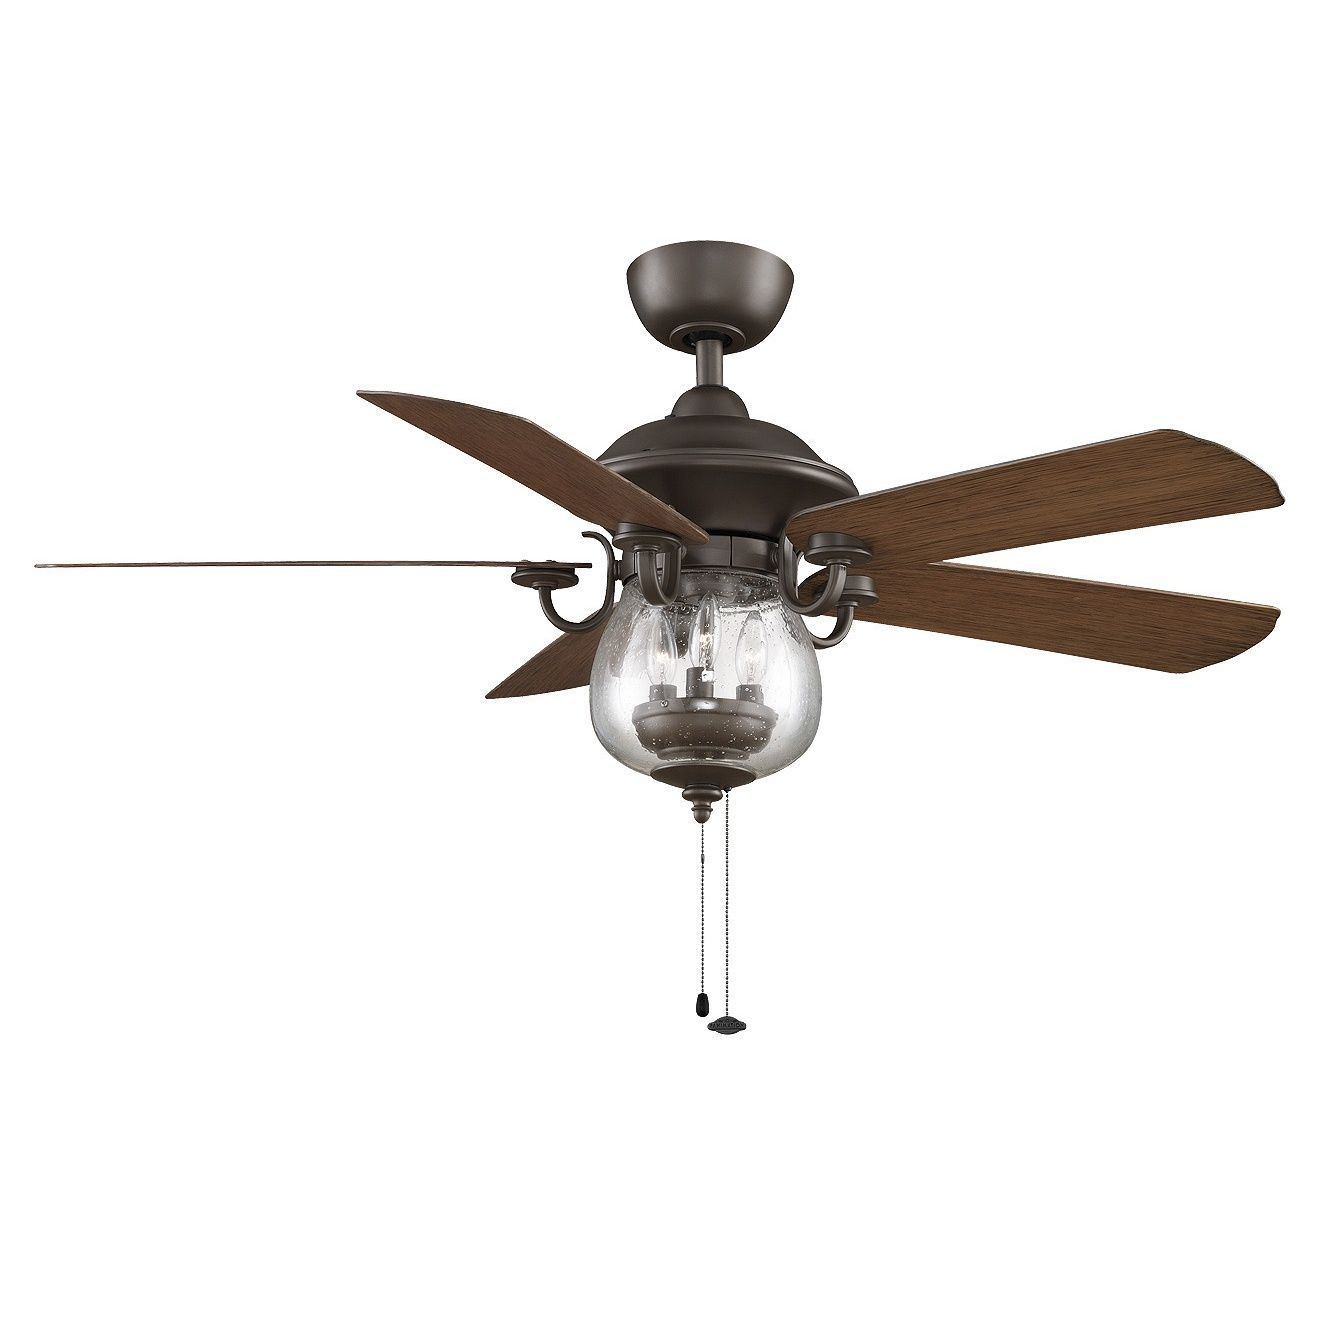 Vintage ceiling fans with lights - Vintage Charm Is Yours When You Add This Stylish And Functional Ceiling Fan With Lights To